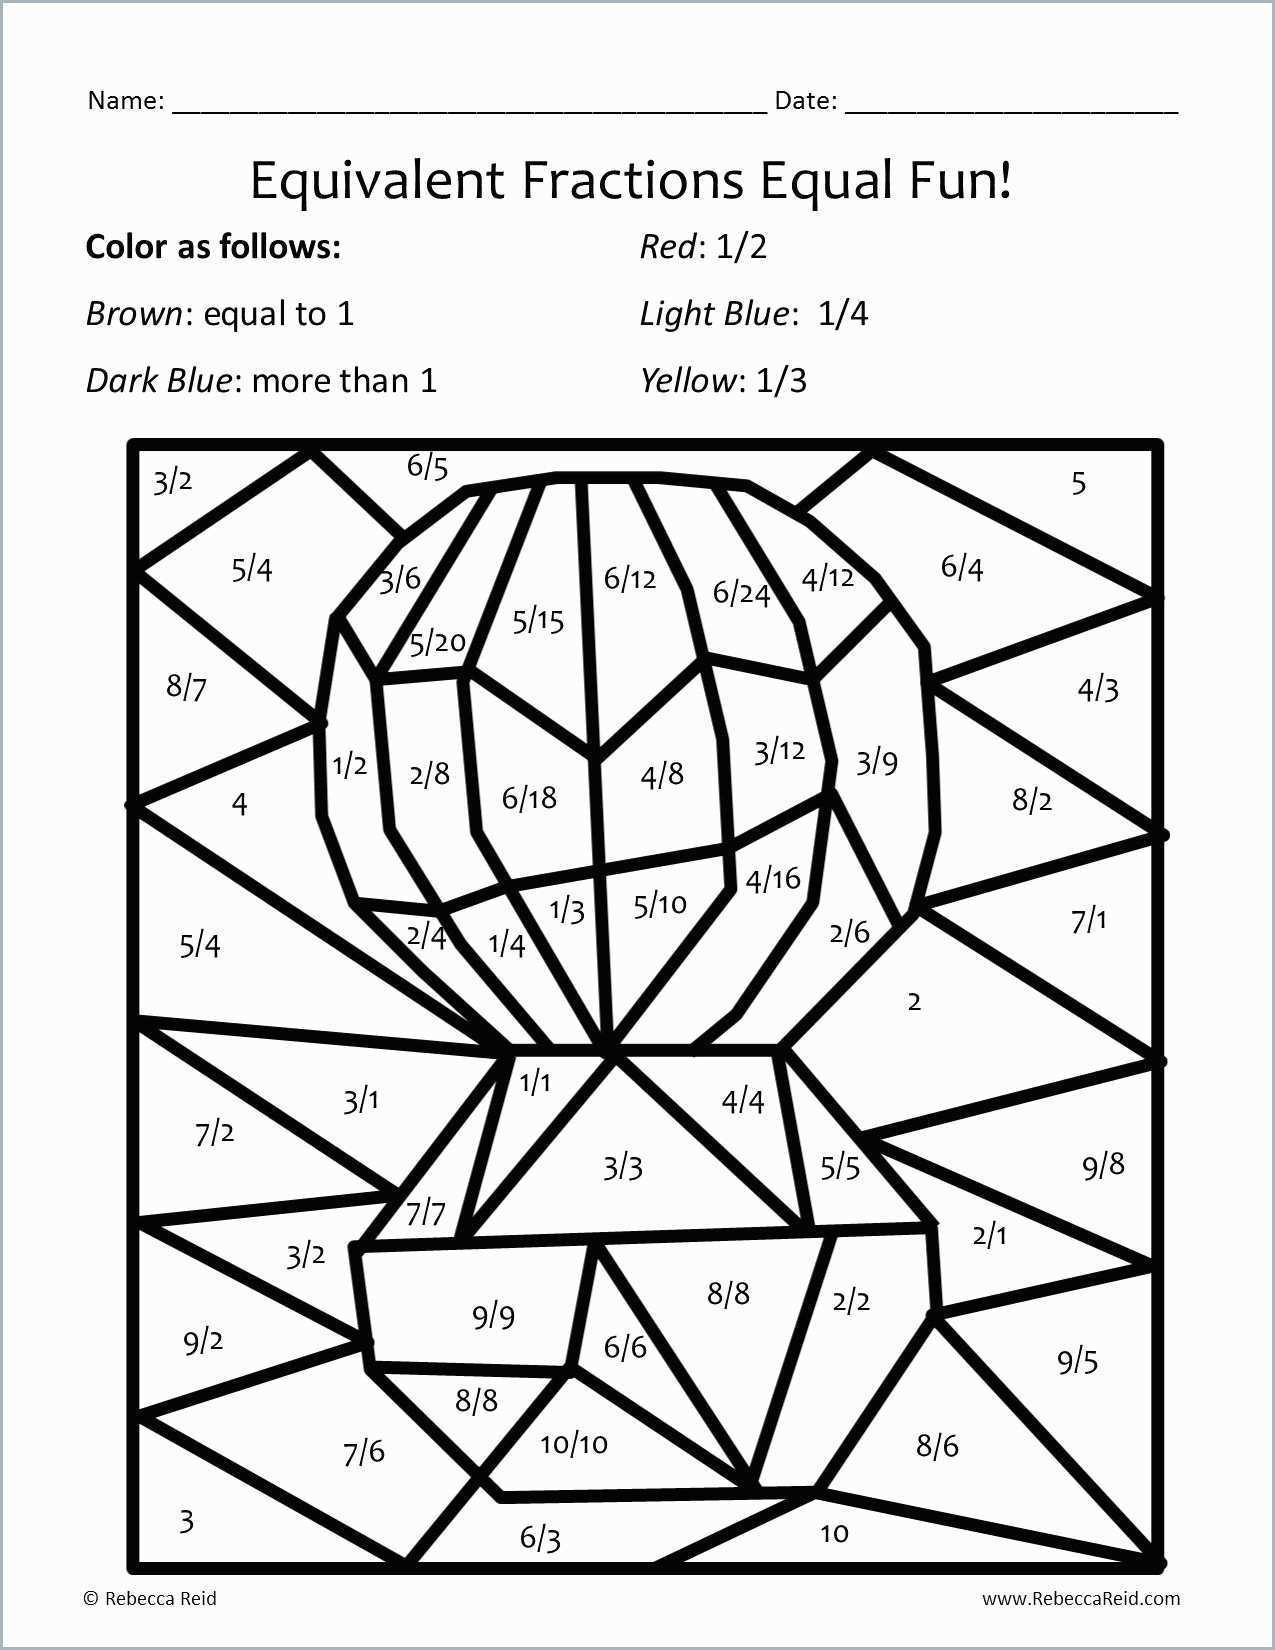 Abeka Math Worksheets Grade 6 Math Worksheets Grade 4 Worksheets Printable Math